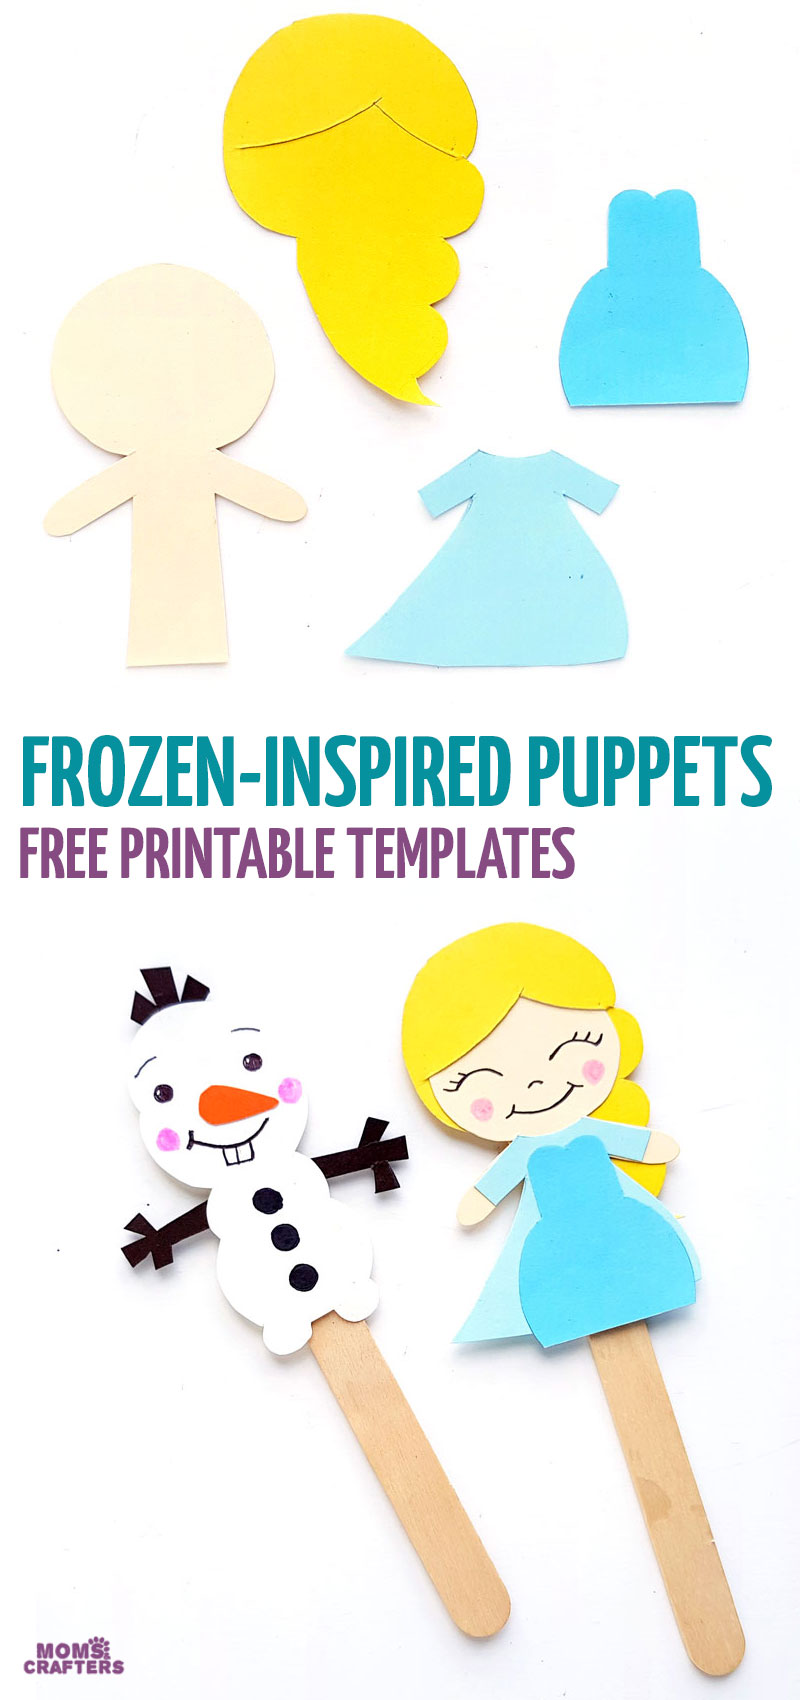 Click for free printable Frozen paper craft templates for Elsa and Olaf puppets and bookmarks!